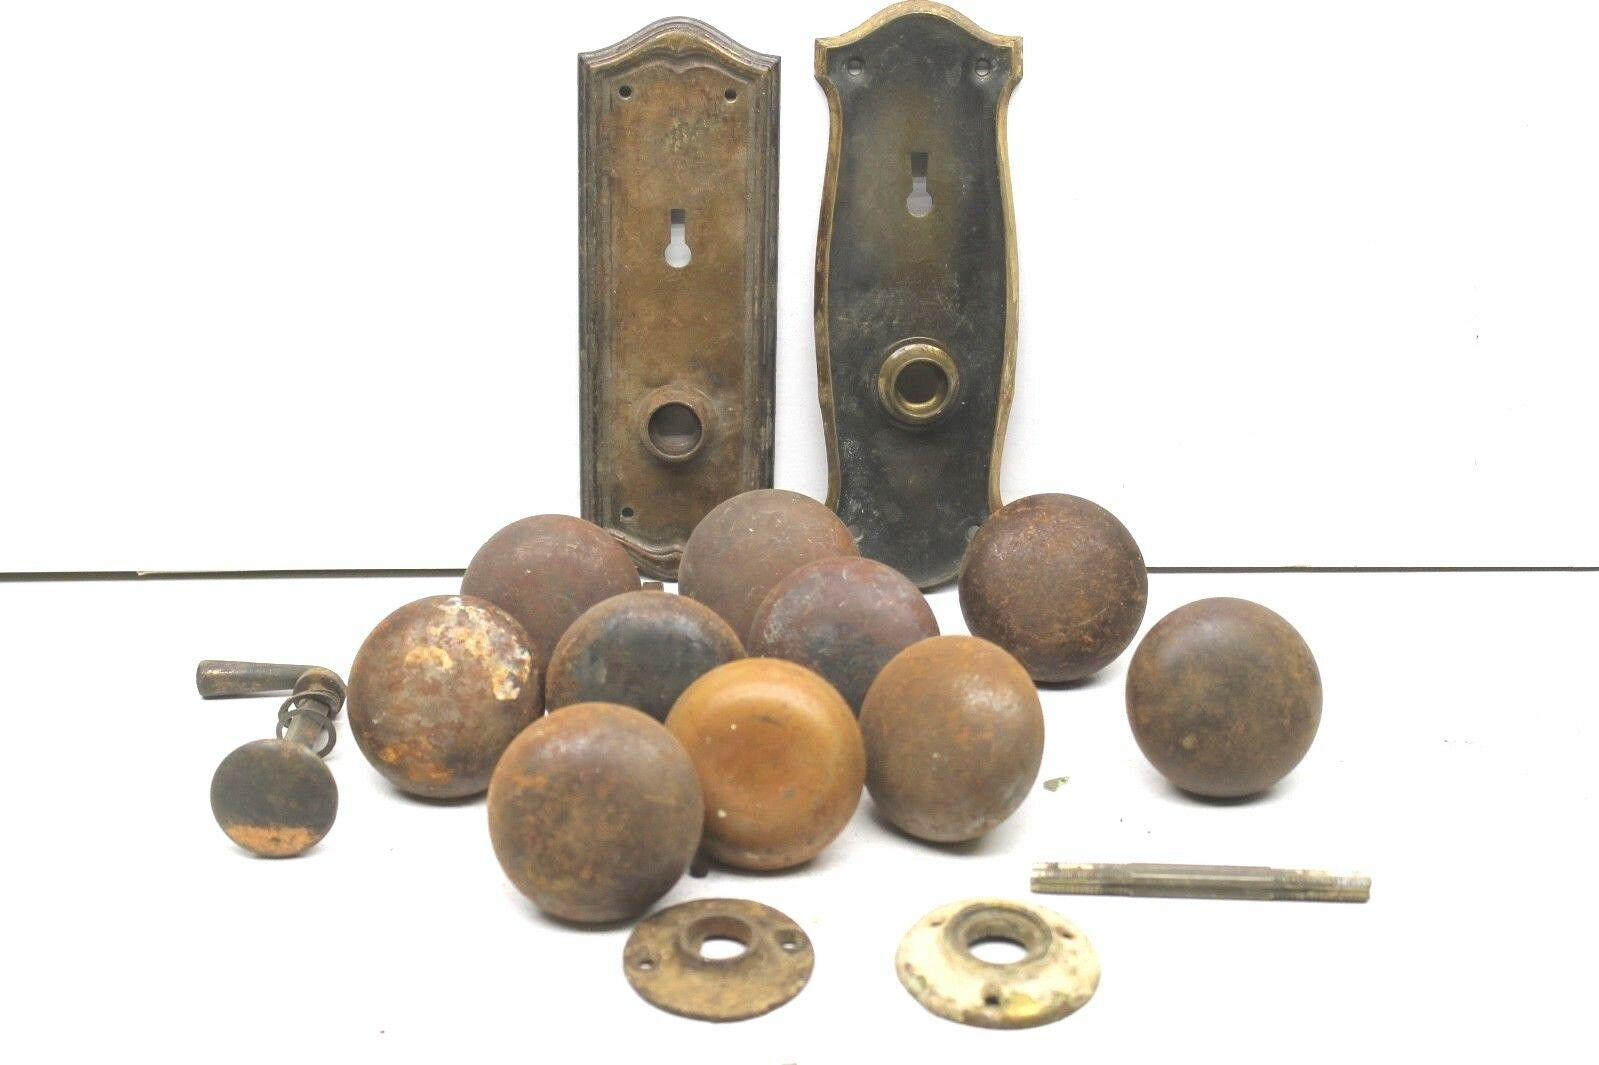 1 of 1Only 1 available ... - ANTIQUE DOOR KNOBS+HARDWARE Metal+Brass+Plates Odd Parts Restoration